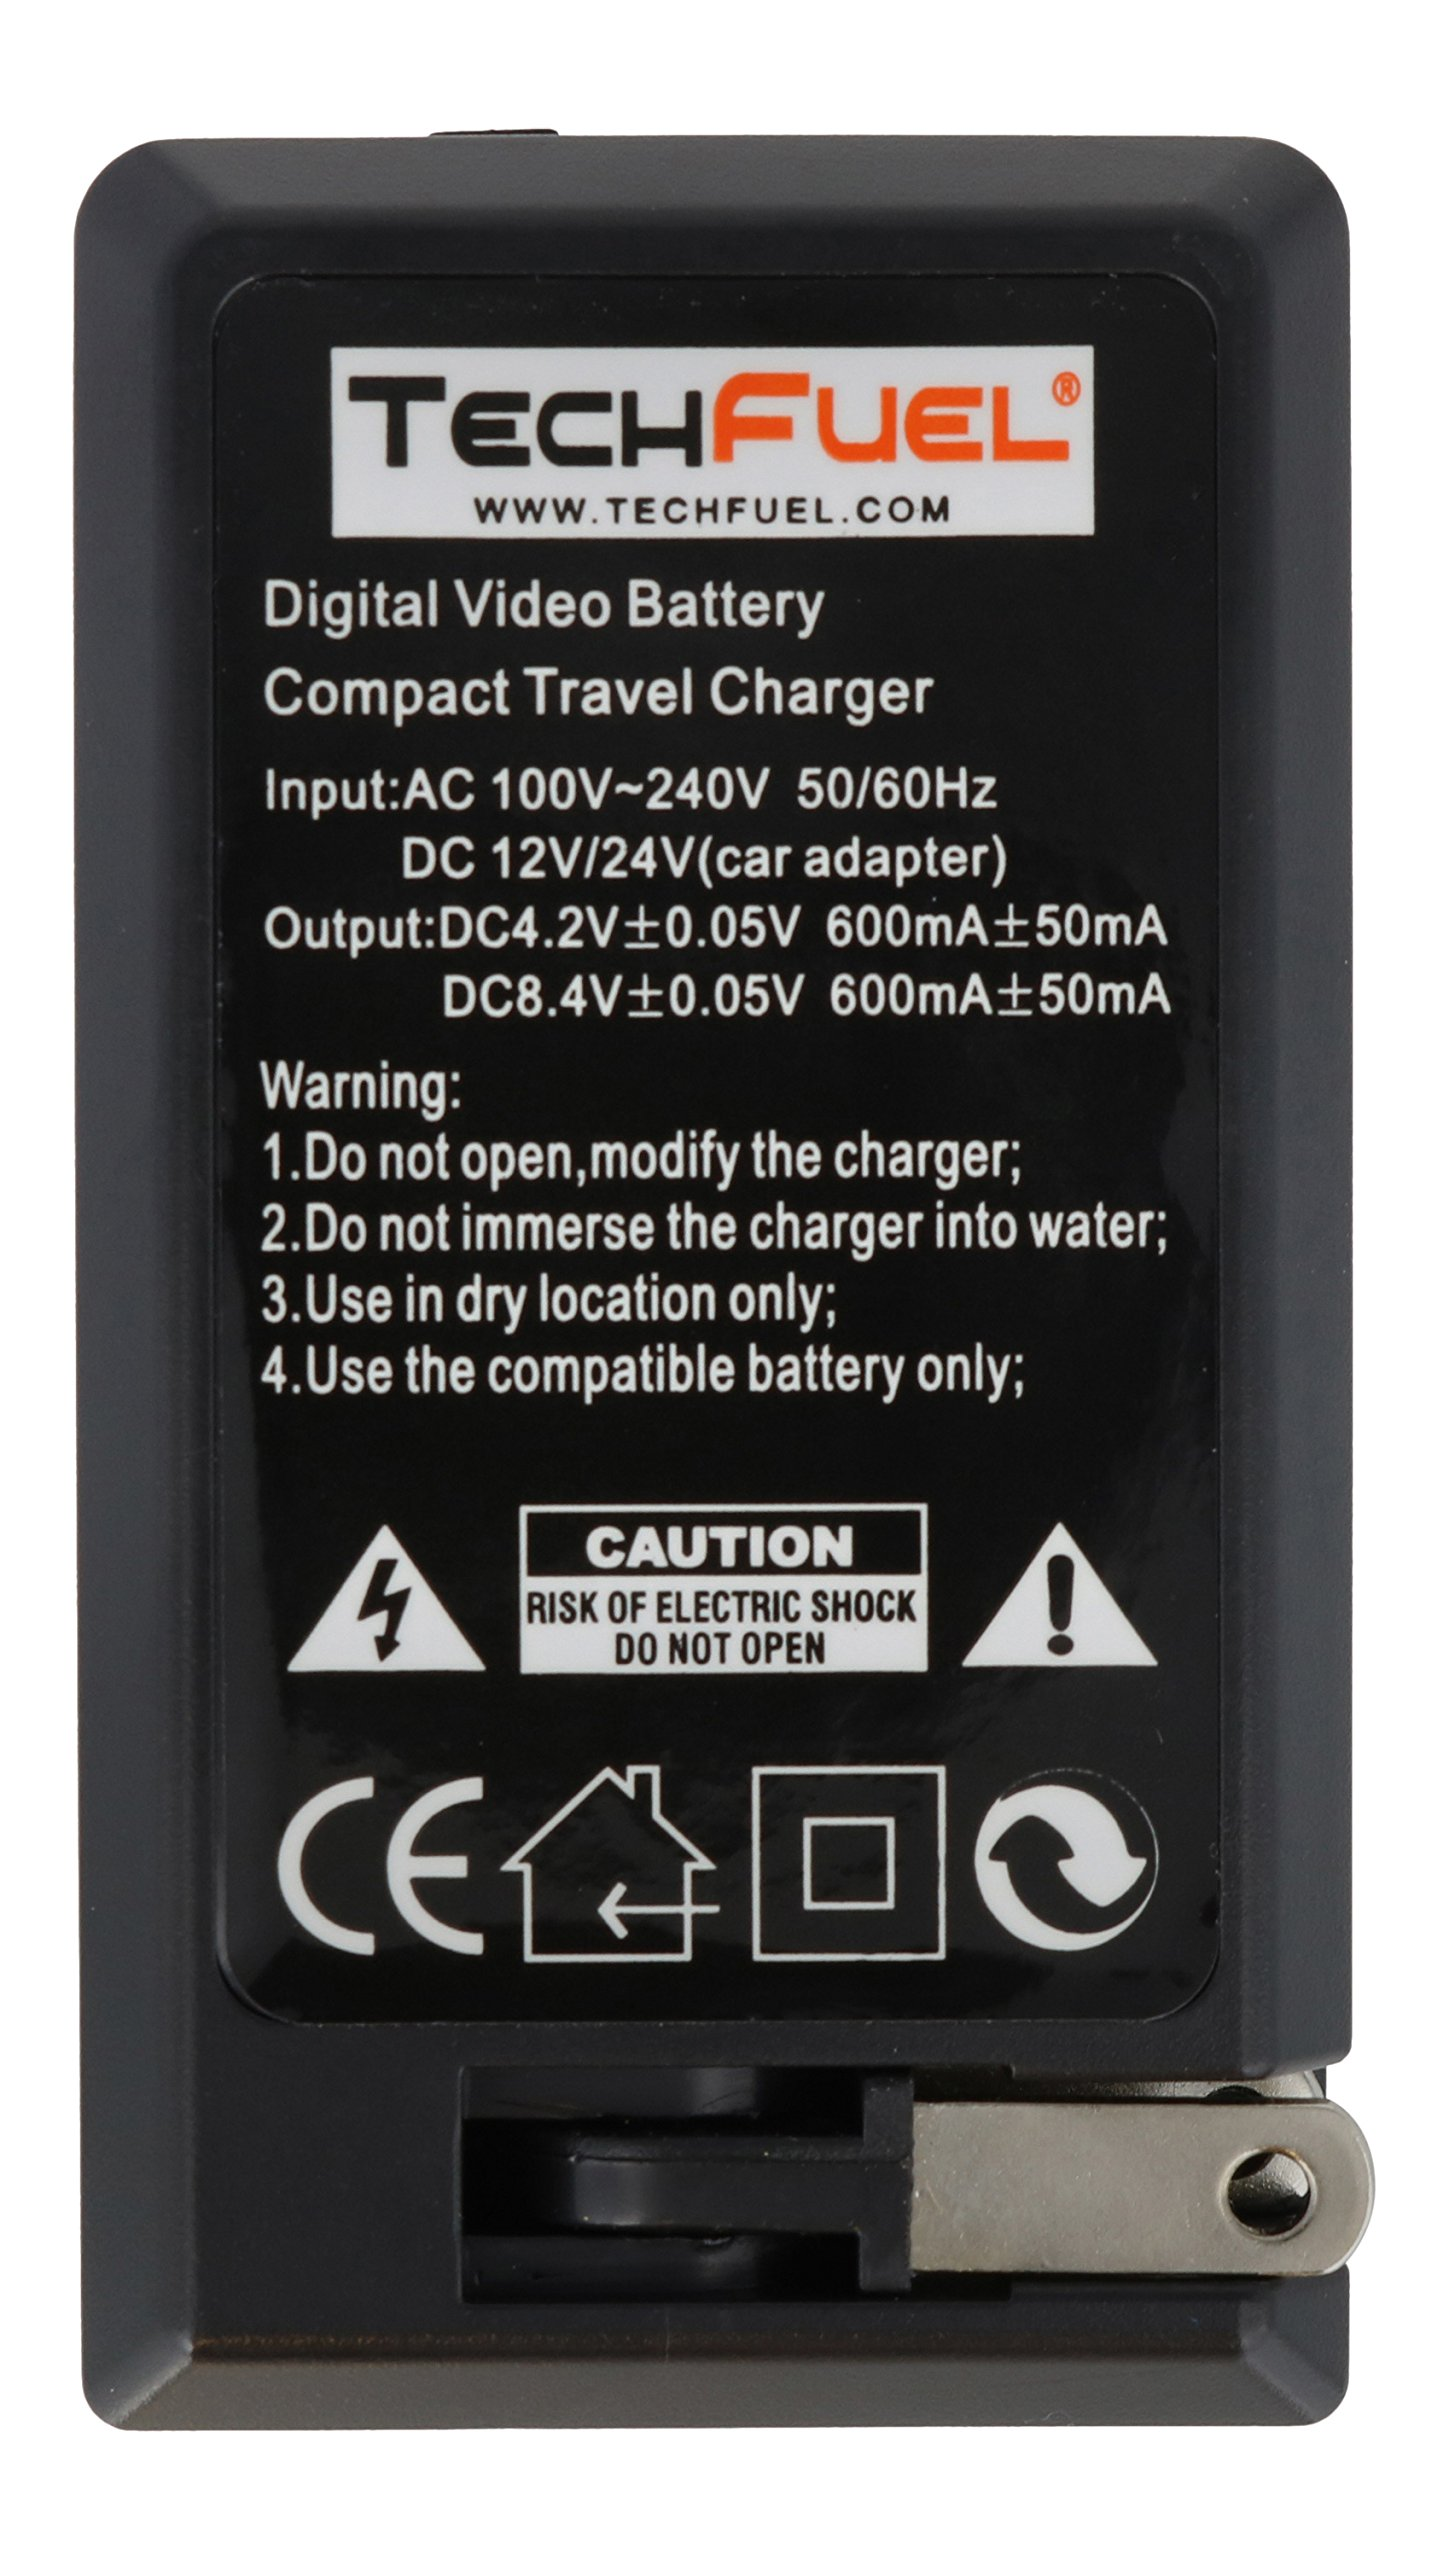 TechFuel Battery Charger Kit for Panasonic HDC-HS9 Camcorder - For Home, Car and Travel Use by TechFuel (Image #3)